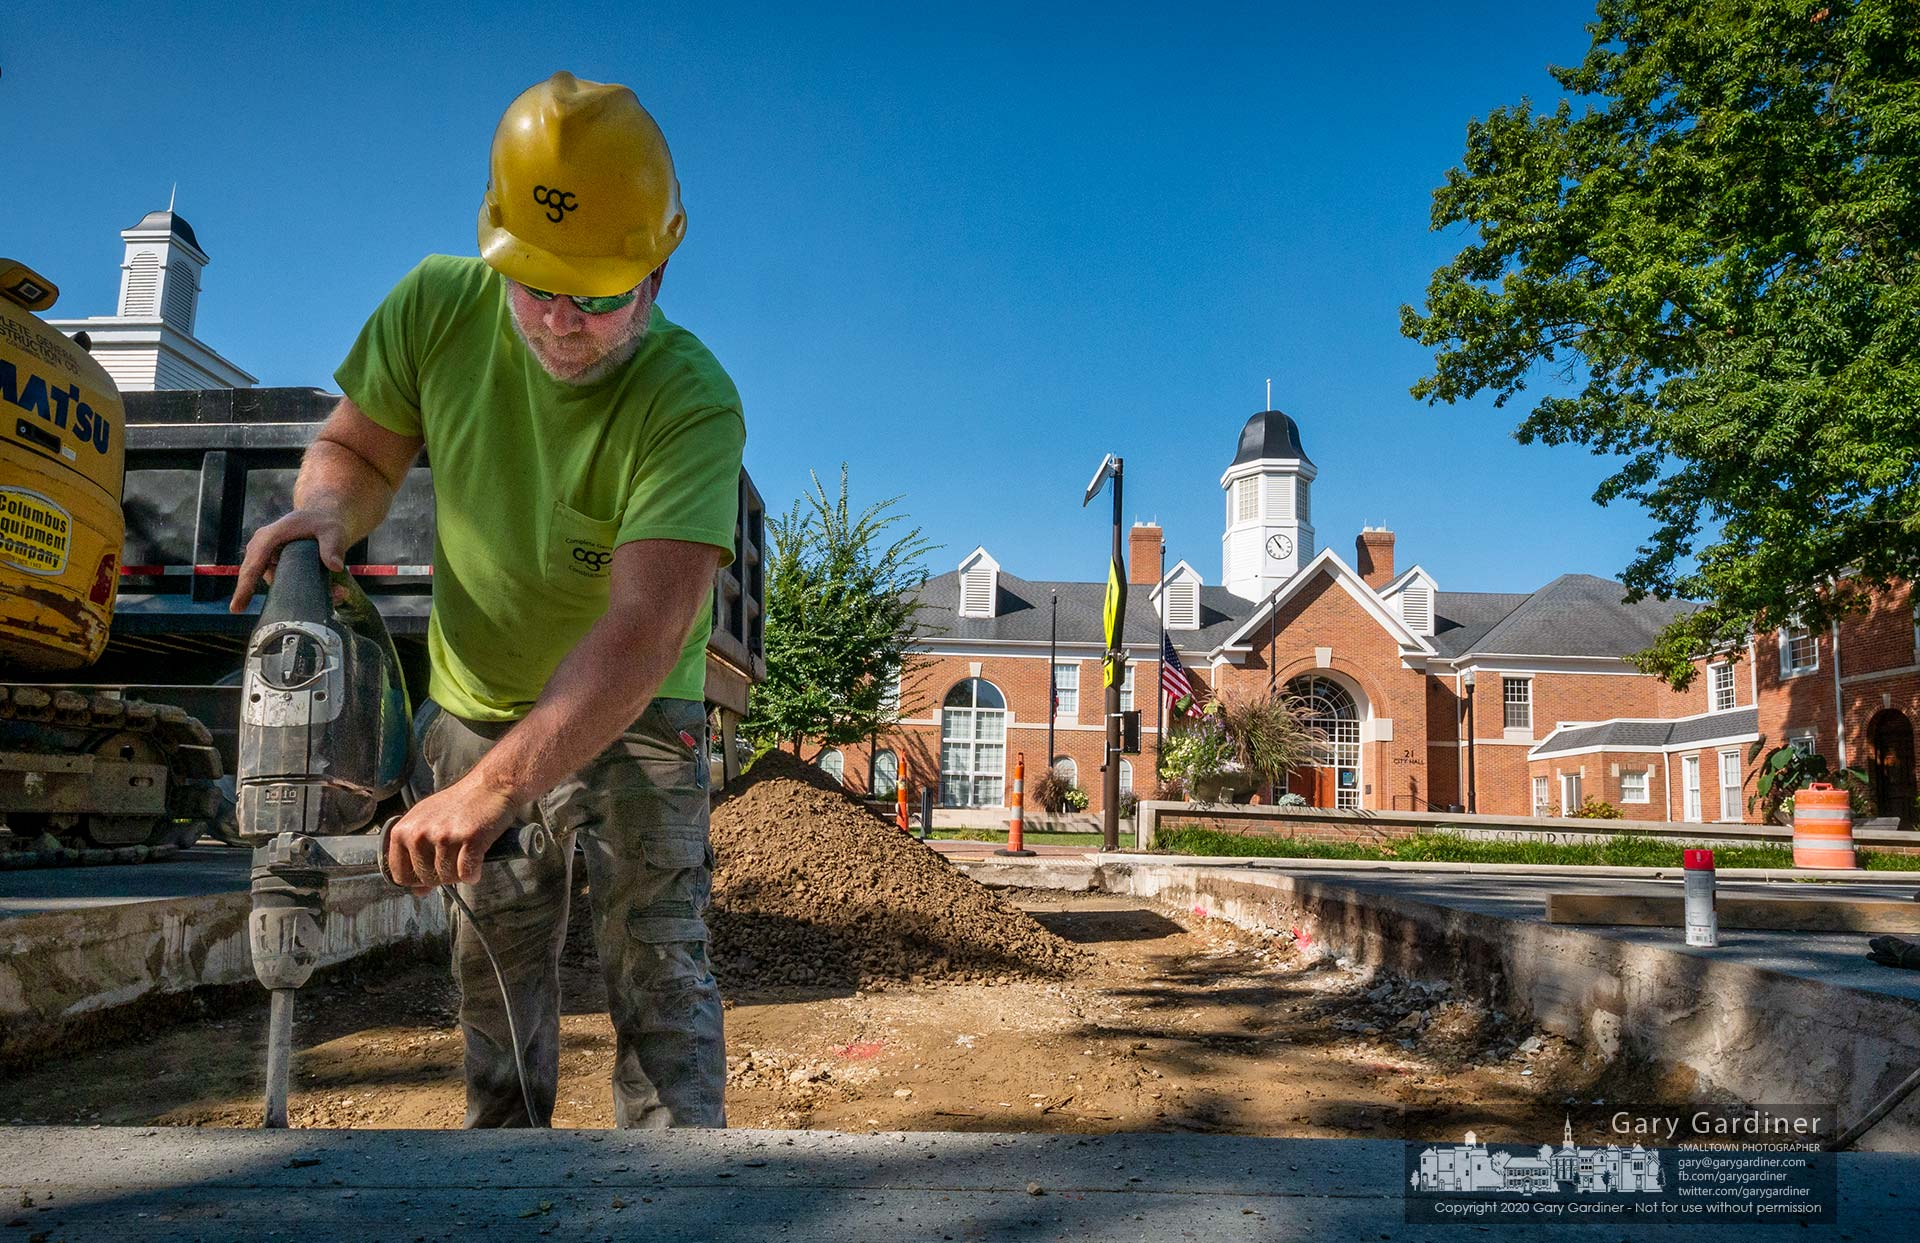 A construction worker hammers away pieces of old concrete to make way for a new layer that will support the brick crosswalk being built across State Street5 in front of city hall. My Final Photo for Sept. 21, 2020.